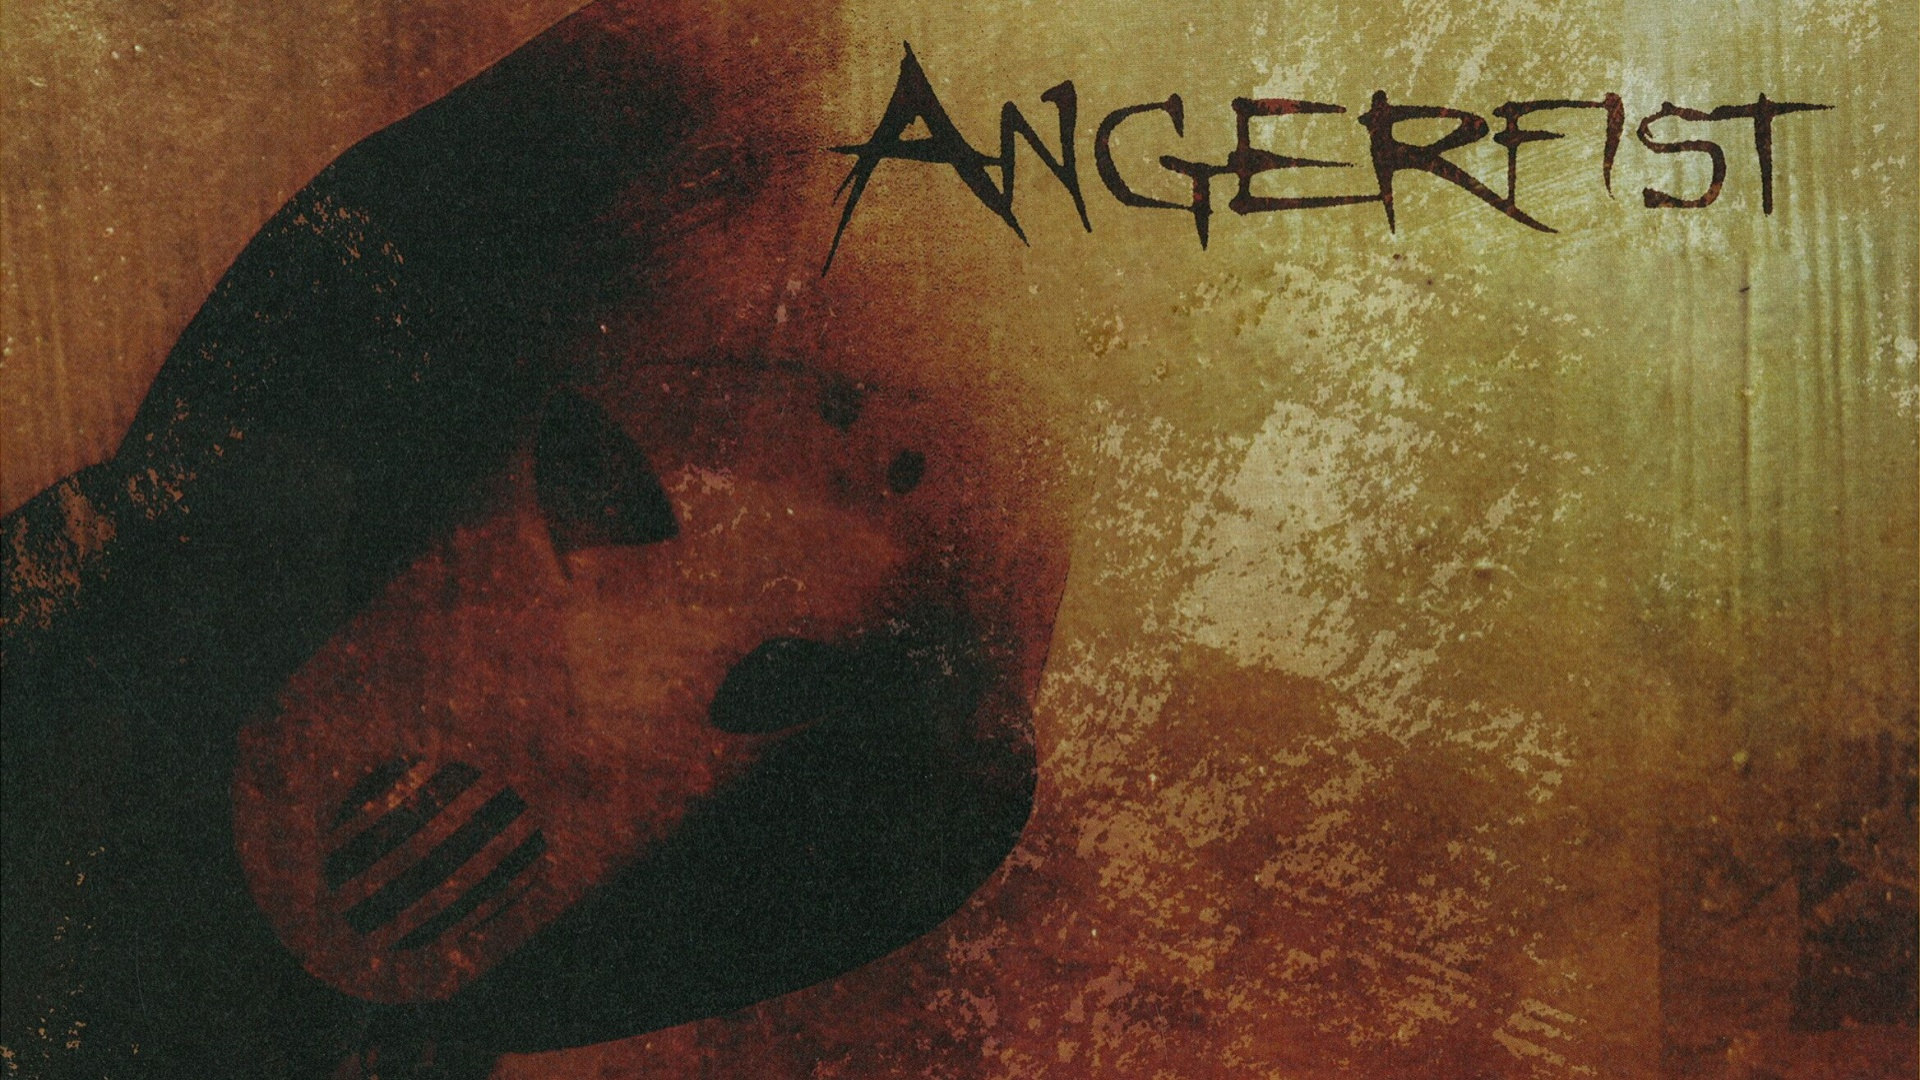 2 Angerfist Hd Wallpapers Backgrounds Wallpaper Abyss